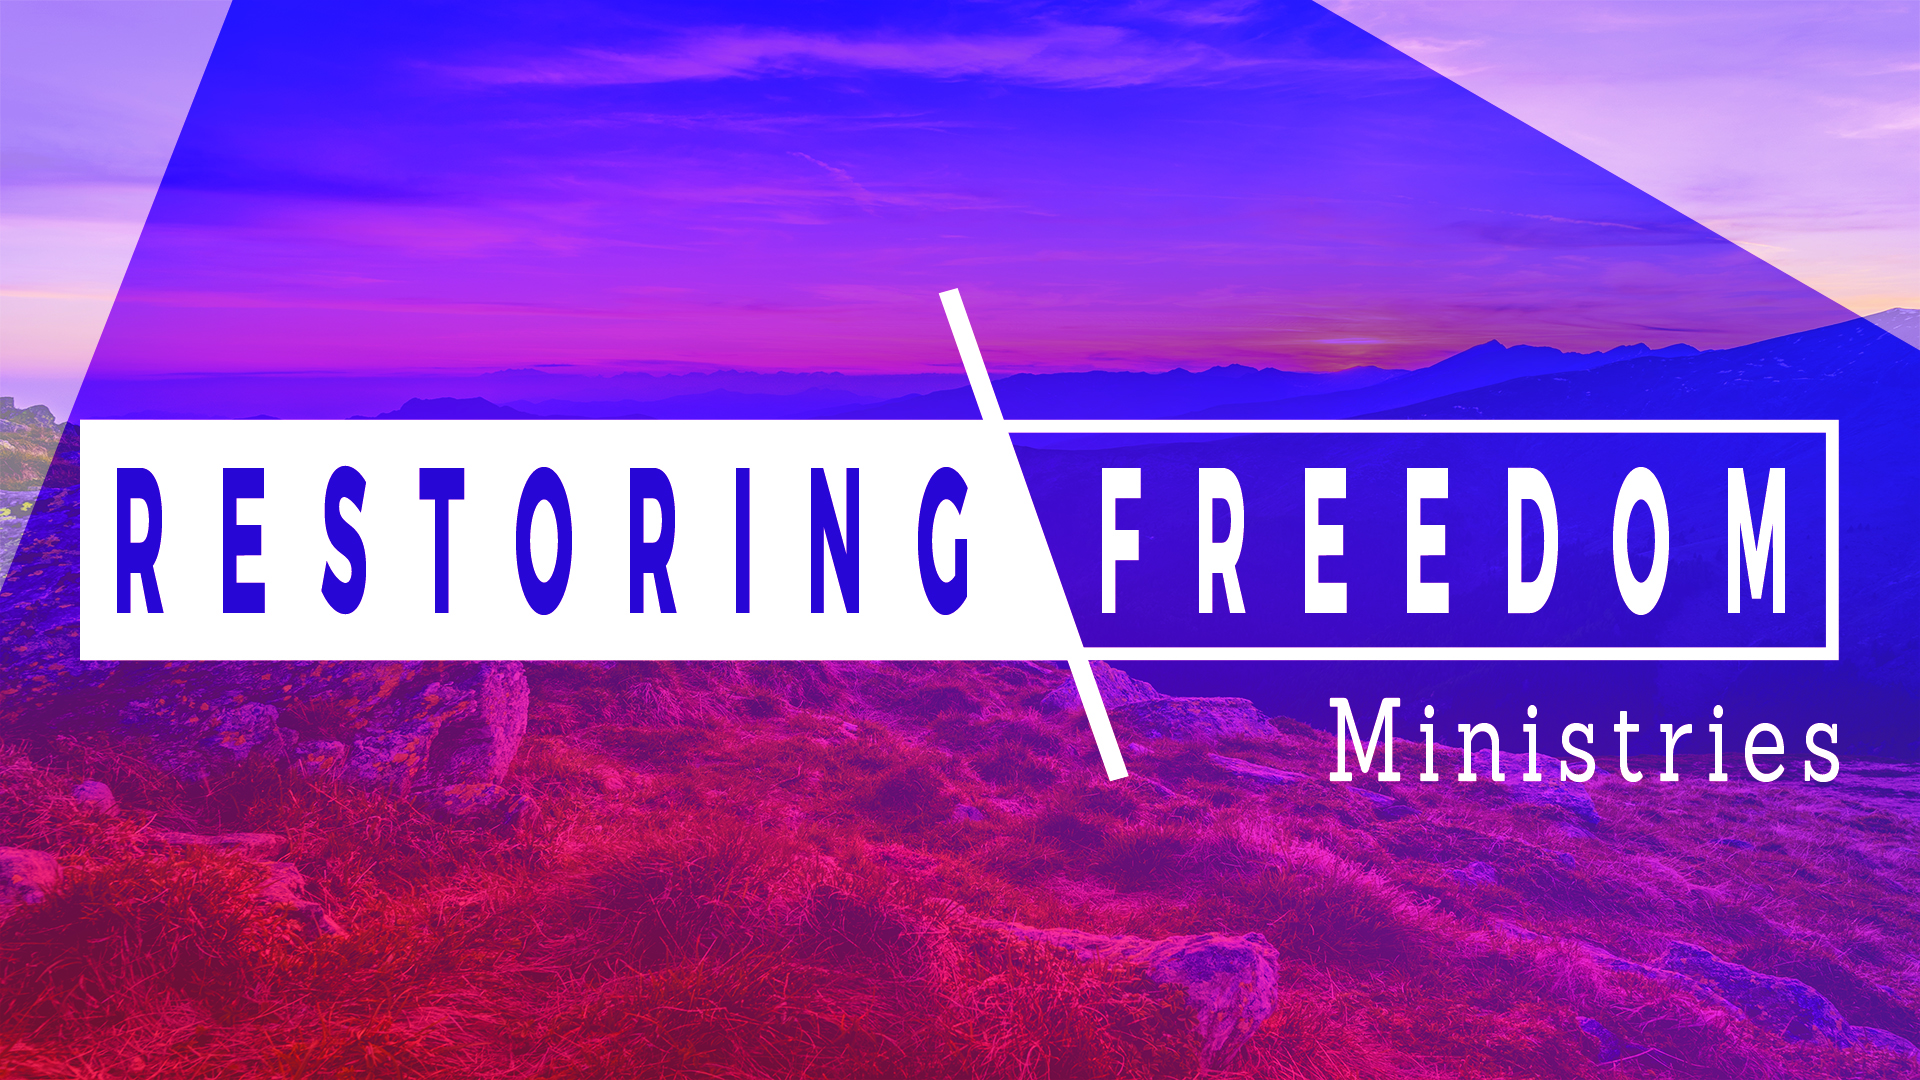 Restoring Freedom is Valley Friends' Recovery Ministry. From all different hurts, pains and hang-ups, Restoring Freedom is a place of instilling identity in Christ, and how to live out of that, rather than the past.